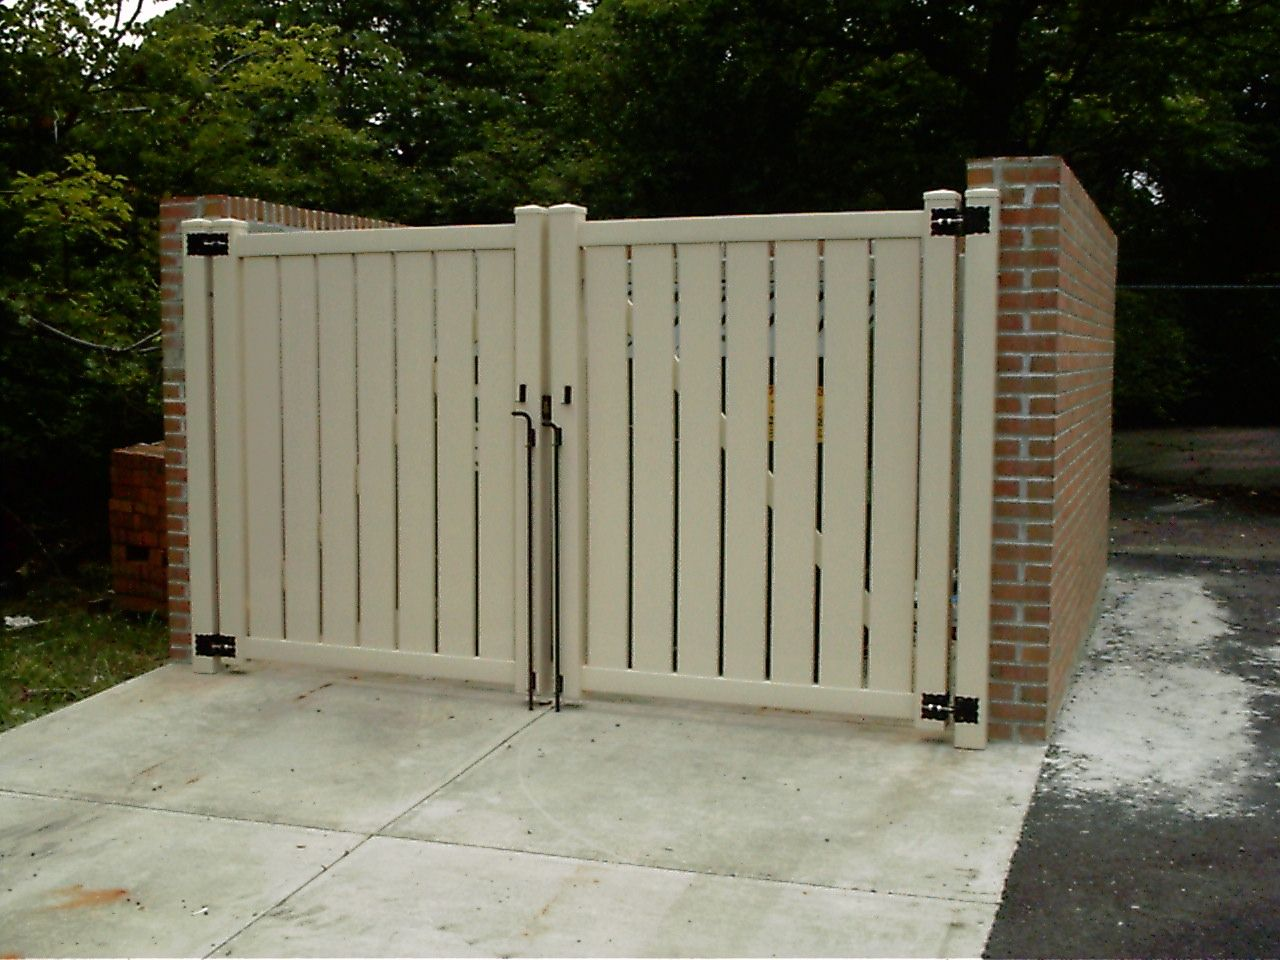 Good Looking Dumpster Enclosure Concrete Pad In Front Needs Heavier Hinges And Pegs Use Some Kind Of Plastic Viynl Hardi Entry Gates House Front Thai House